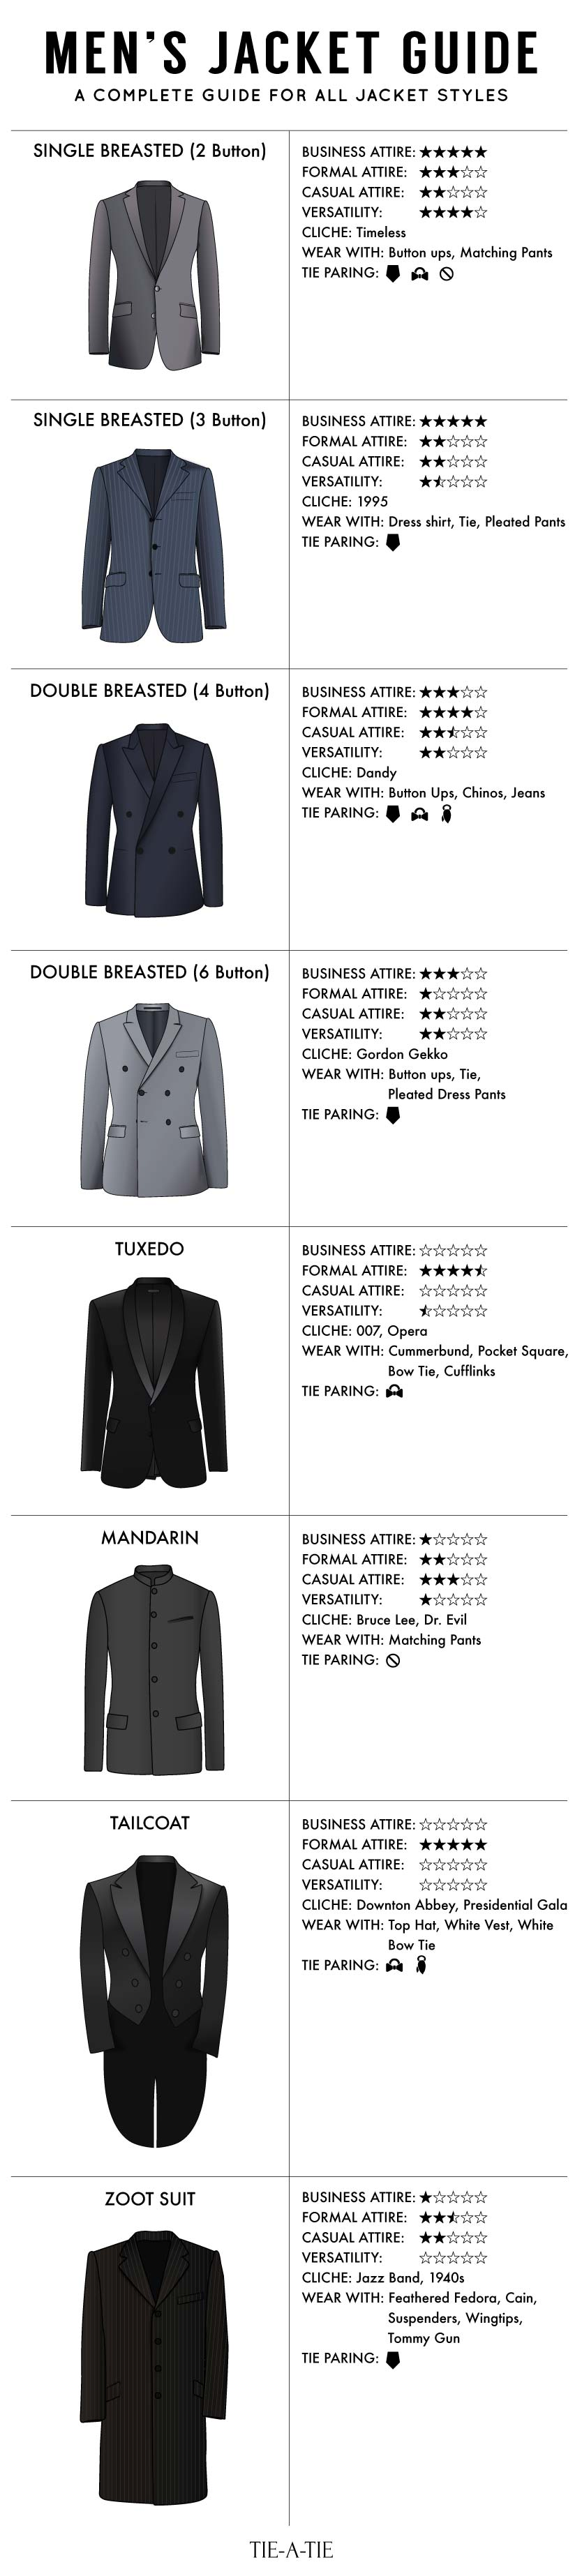 mens jacket guide